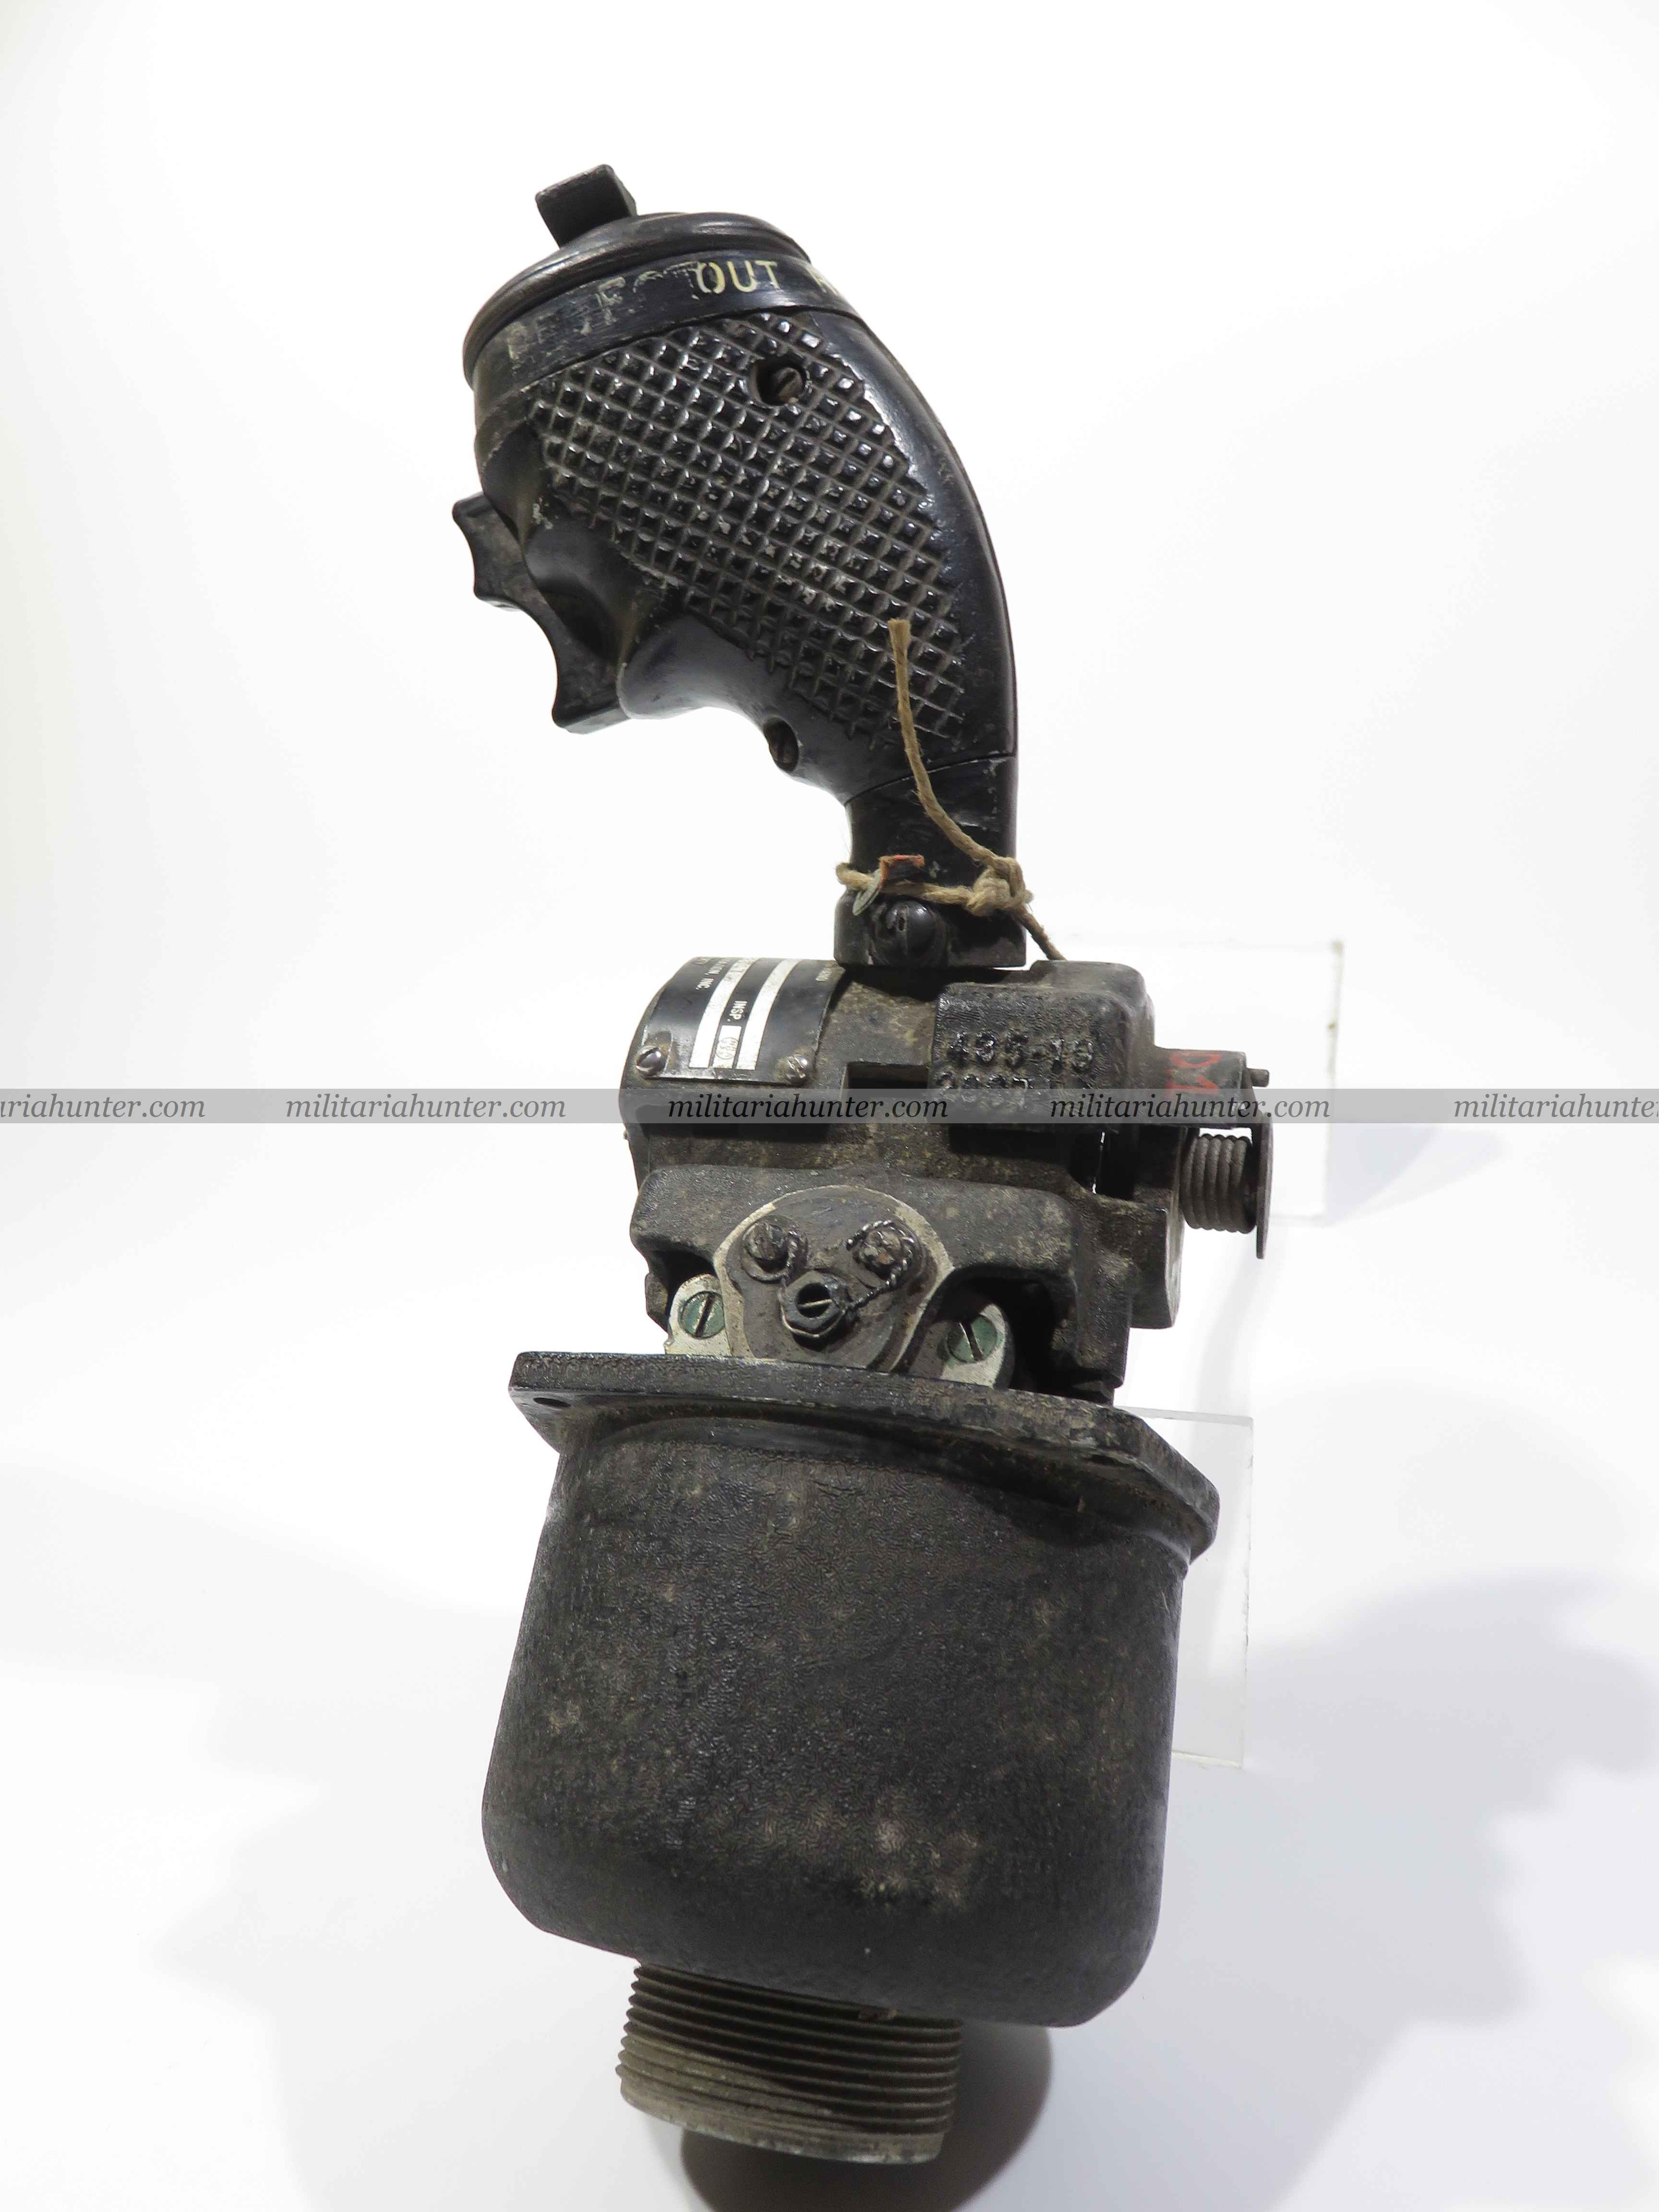 militaria : F86 sabre jet fighter E4 radar joystick grip control